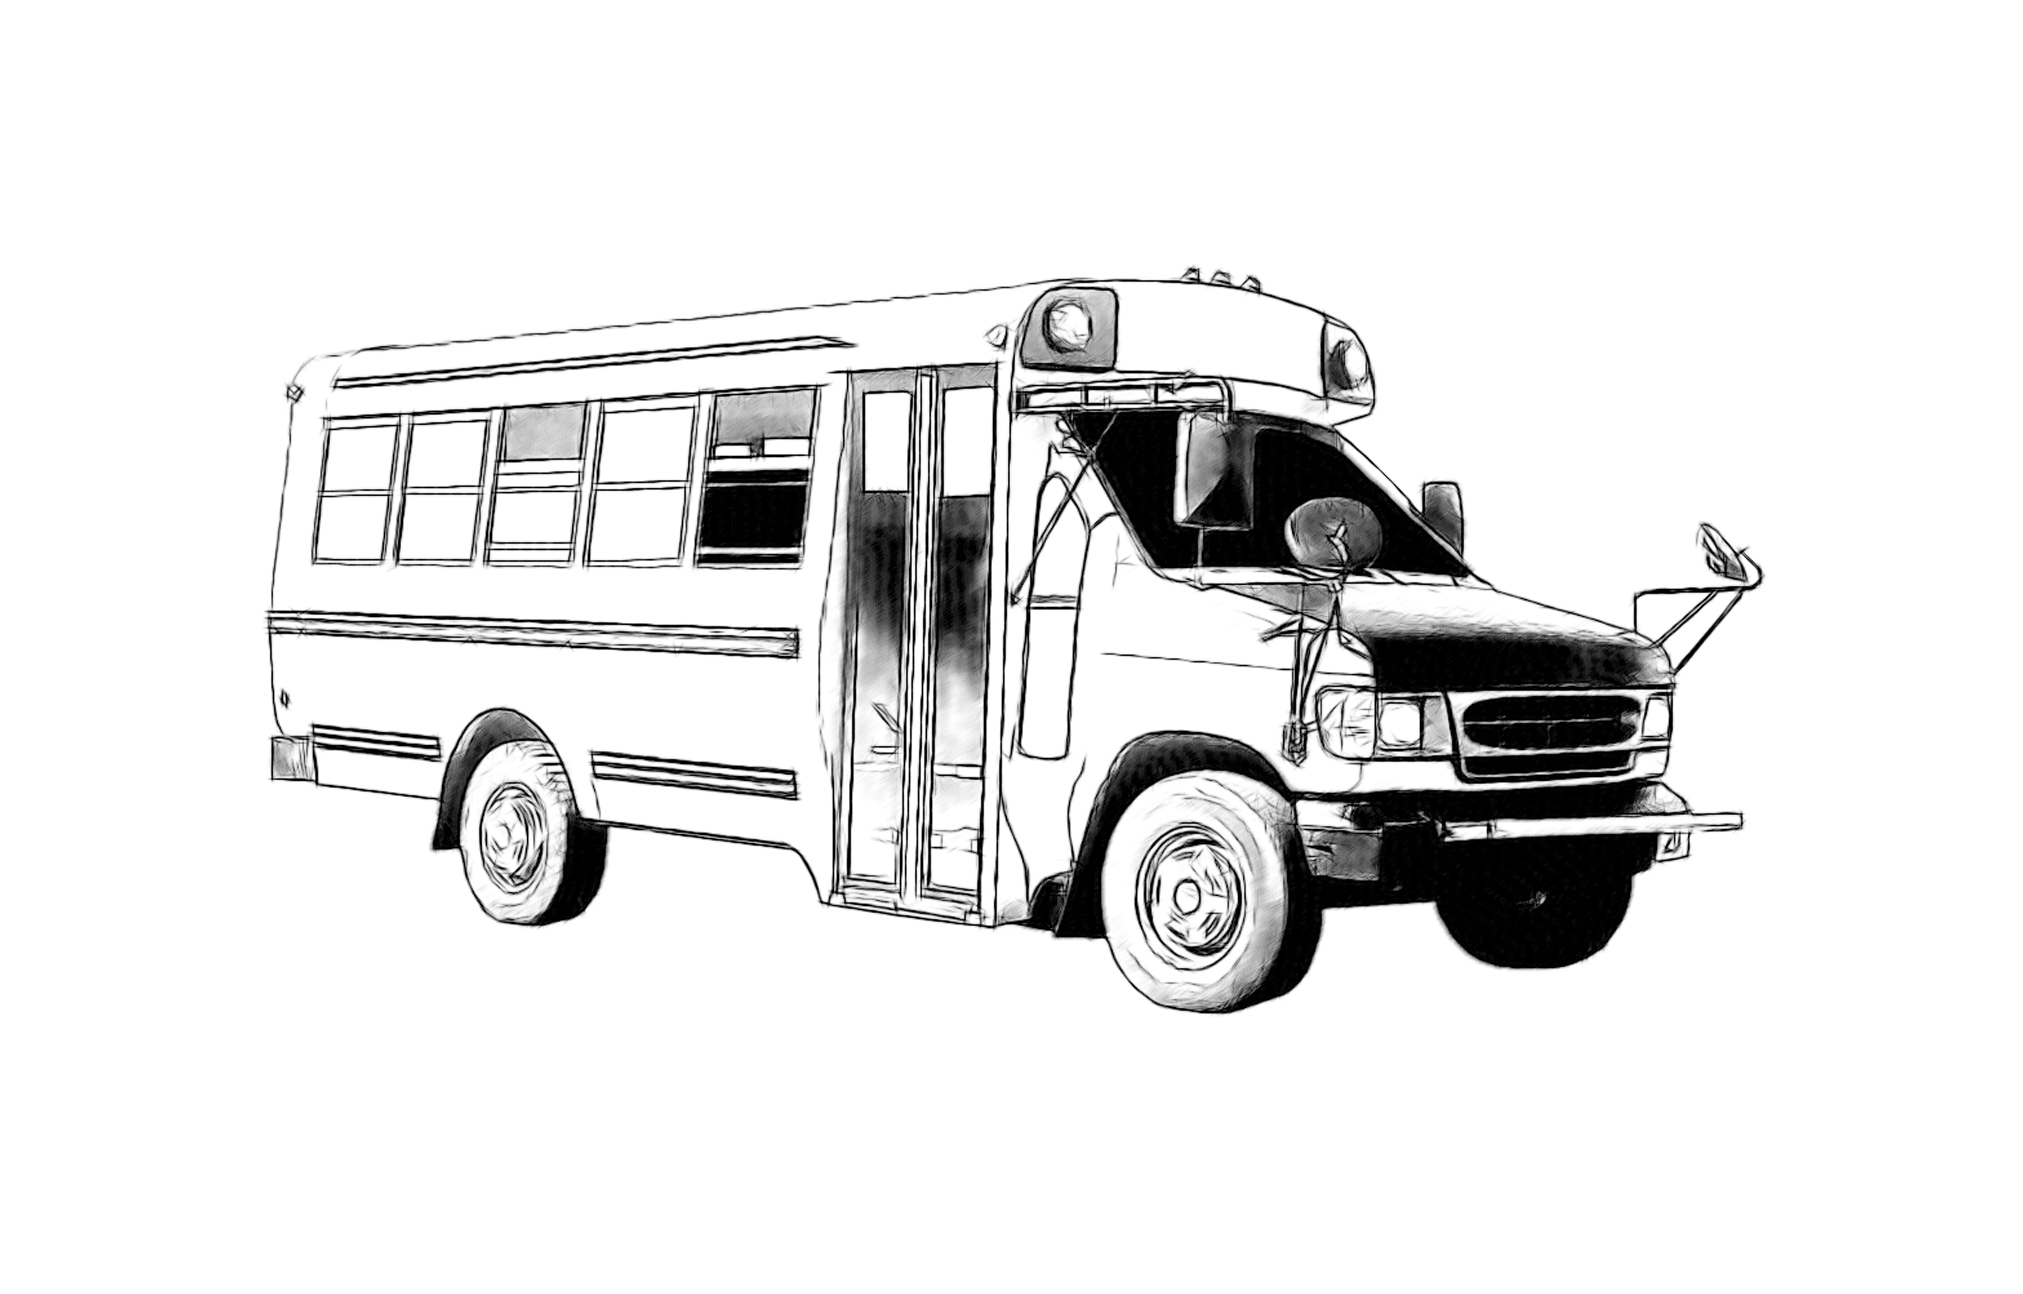 printable school bus coloring page school bus coloring pages to download and print for free page coloring bus school printable